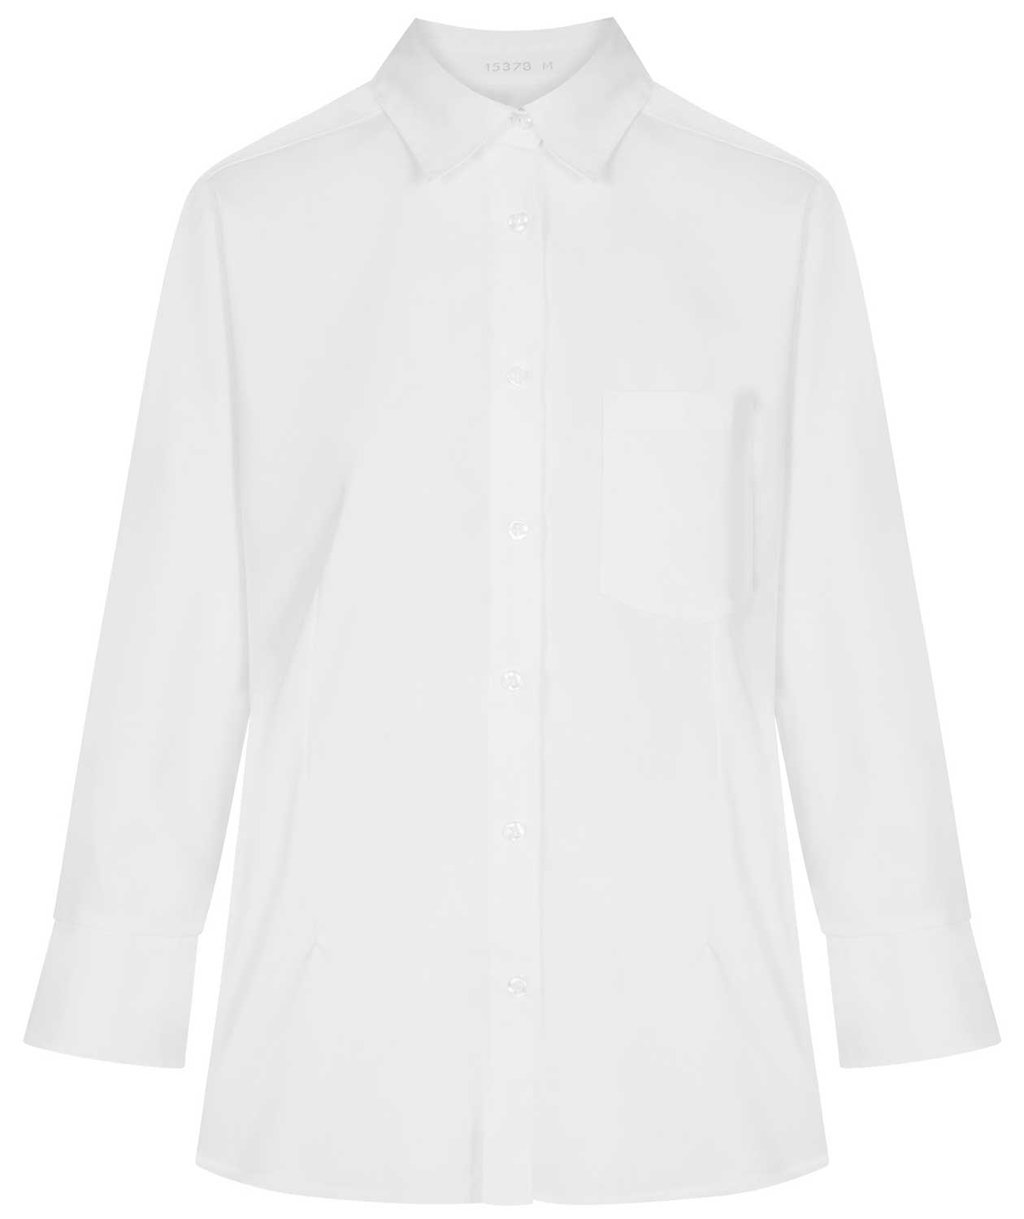 Kentaur 7/8-length sleeved women's shirt, White